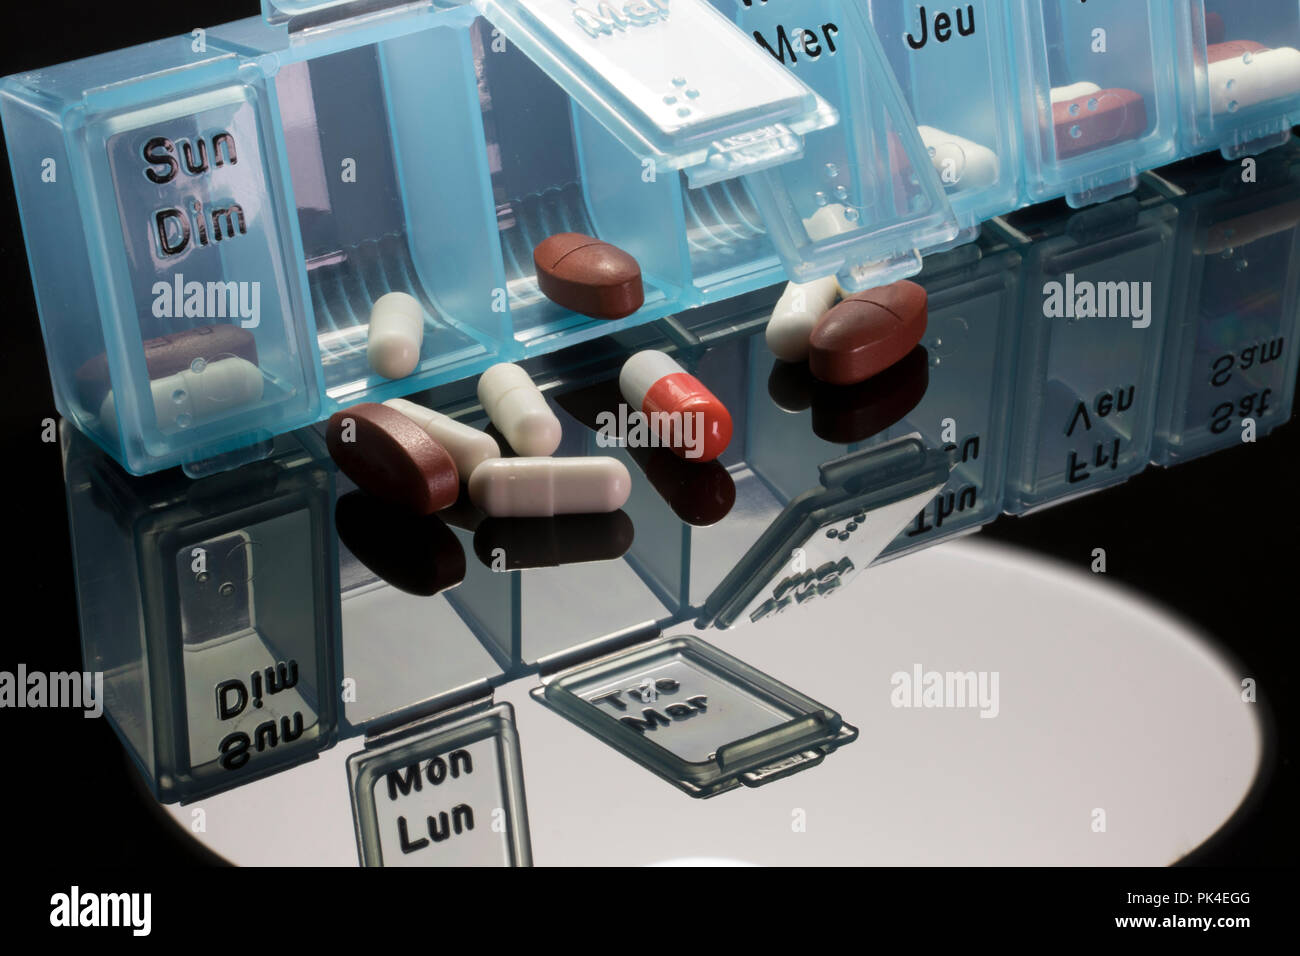 Blue pill dispenser with vitamins, pills and capsules. Concept of helth amd medical care. - Stock Image